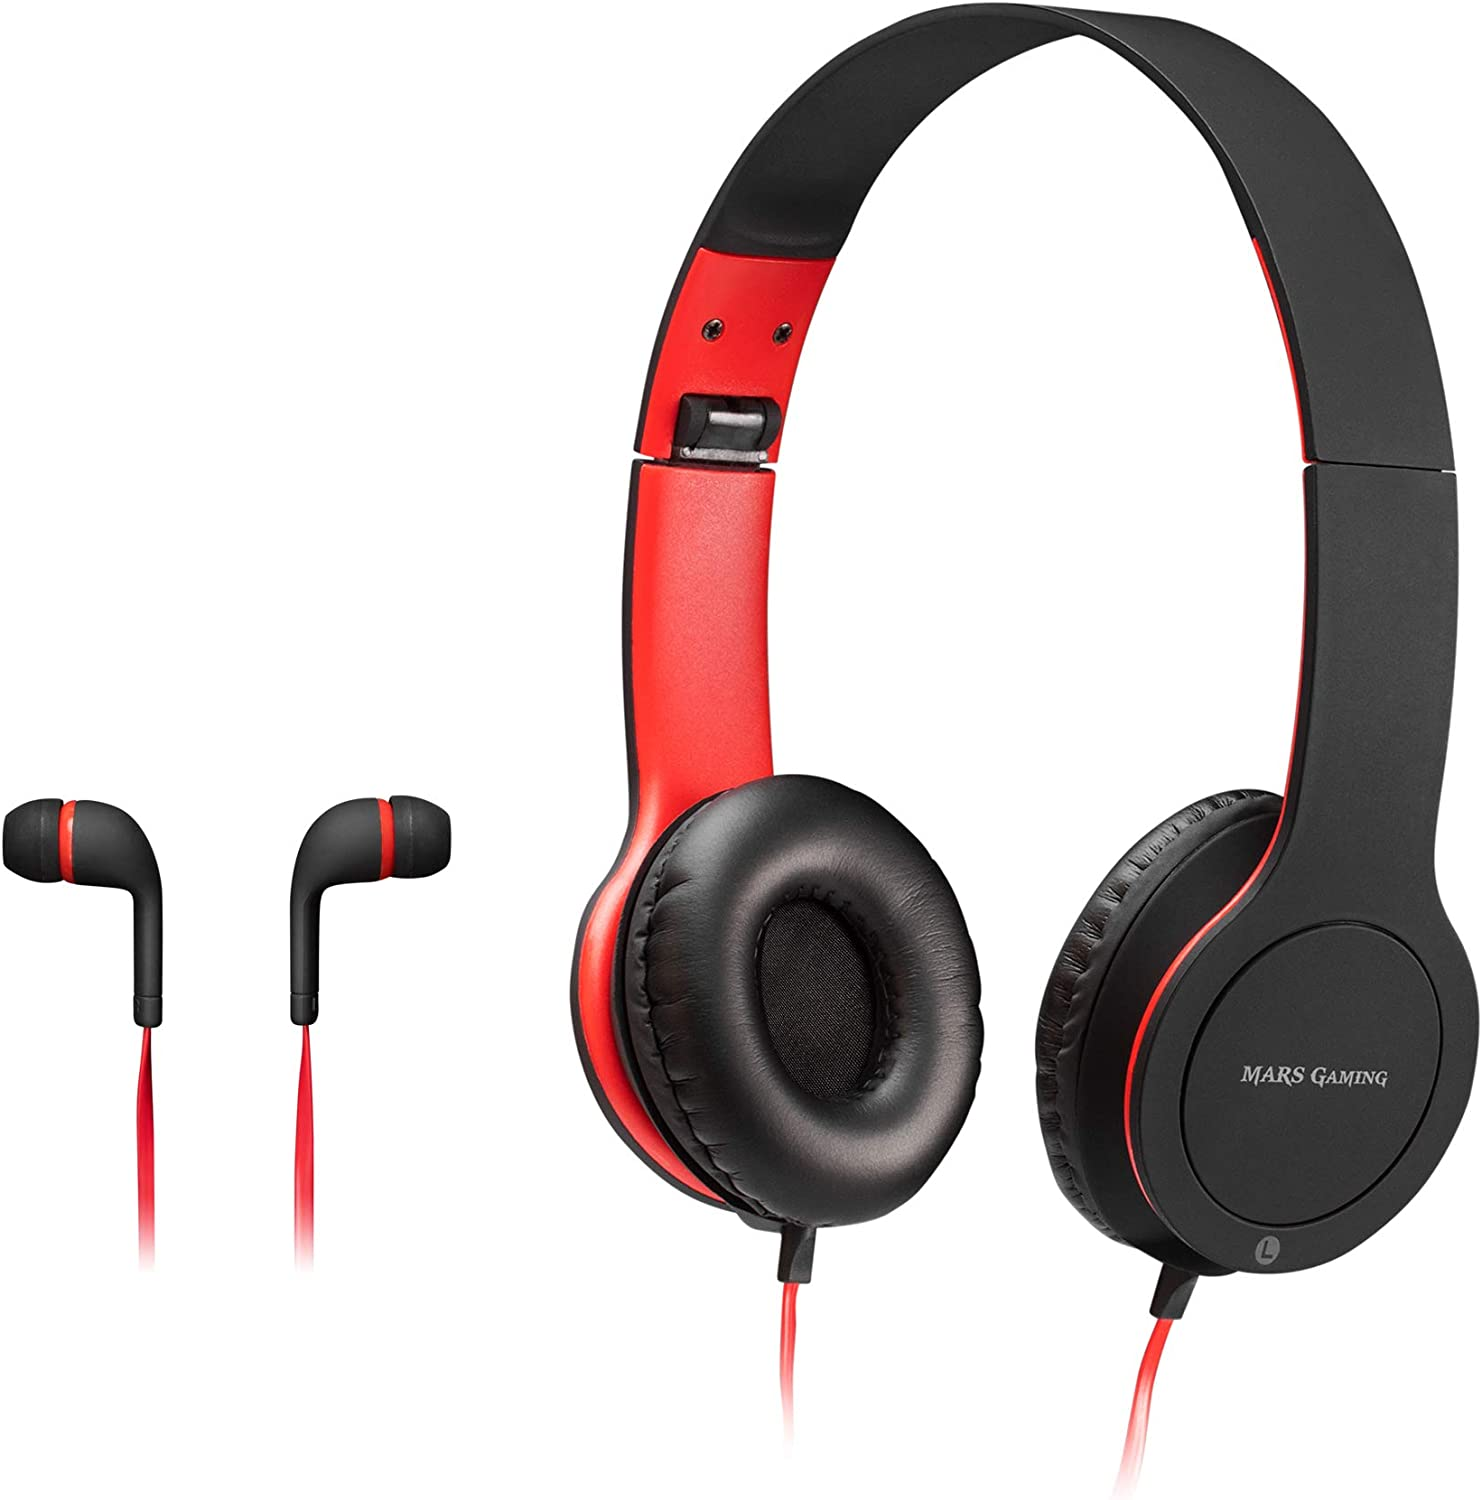 Mars Gaming MHCX, Pack Gamer, Cascos+Auriculares in-Ear, Jack 3.5, Soft Touch